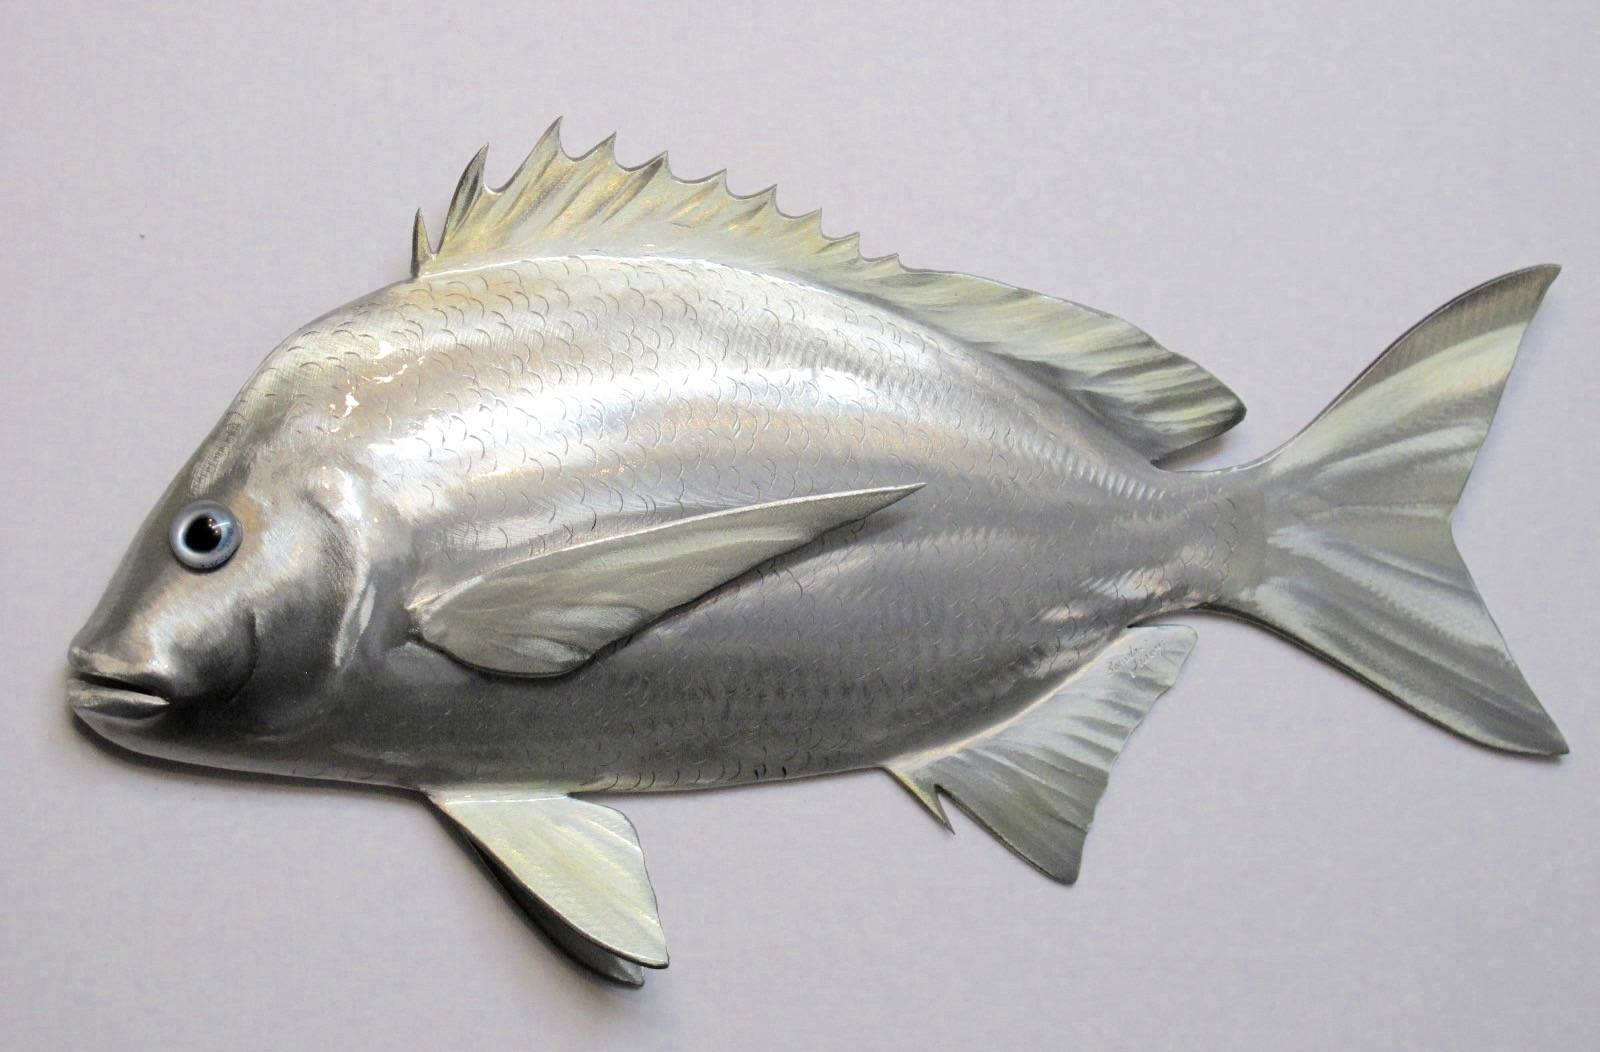 Metal Bottle Cap Fish Wall Art Snook 3ericseasel On Etsy Within Latest Fish Metal Wall Art (View 13 of 20)